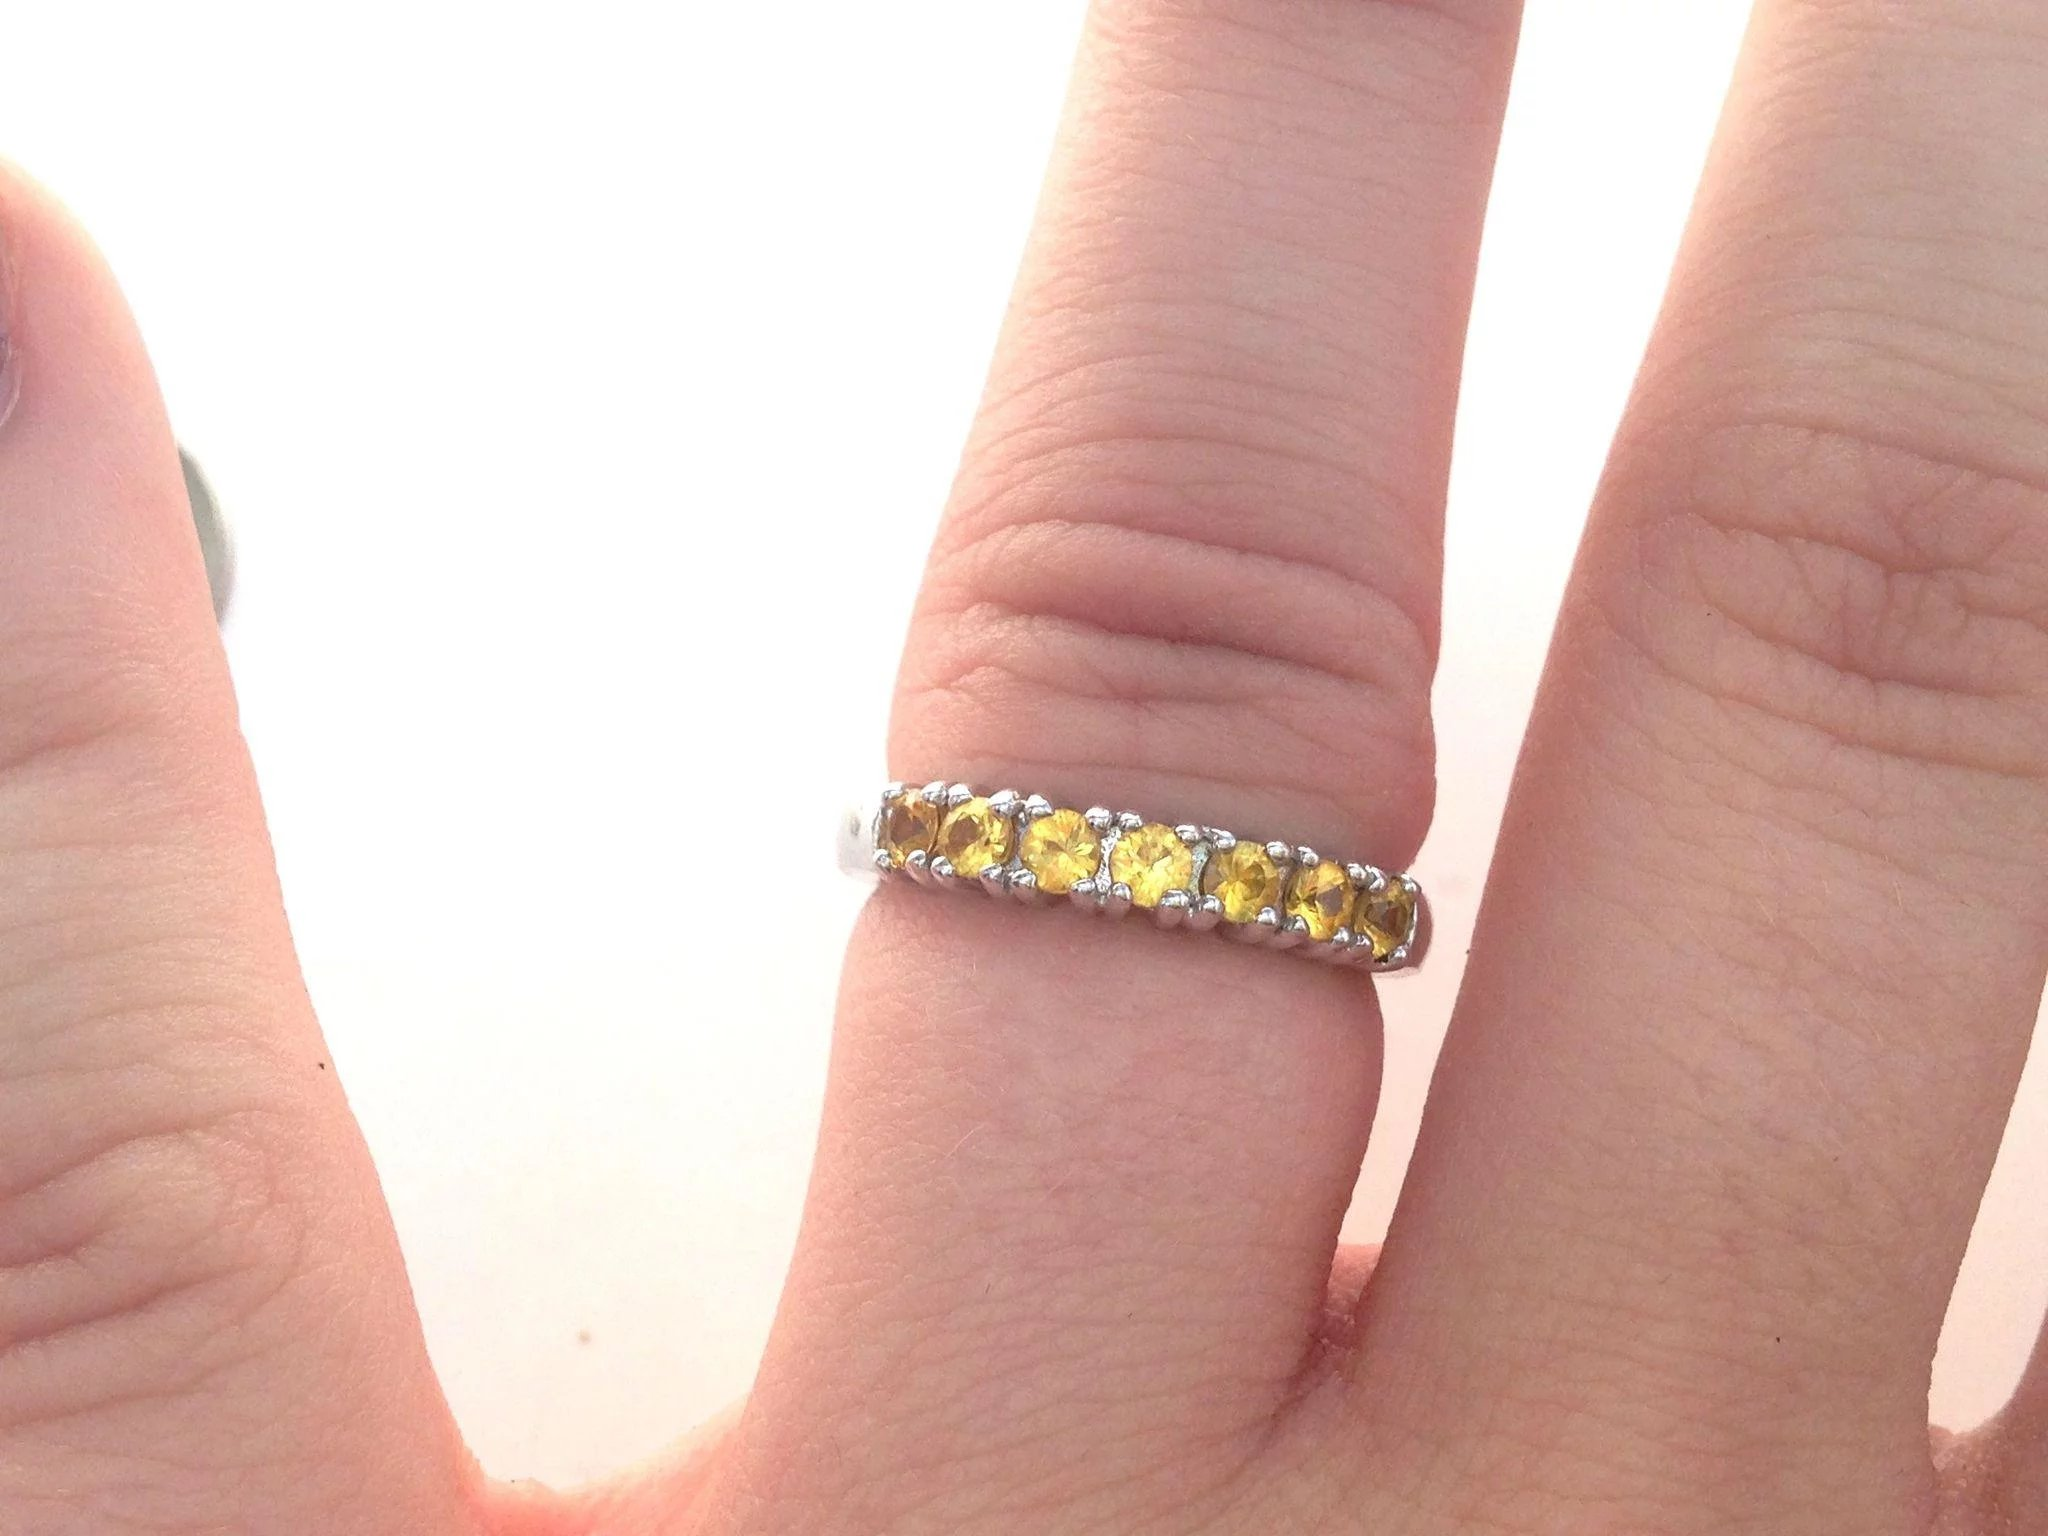 Vintage Anniversary/Wedding Band with Citrine and White Gold ...